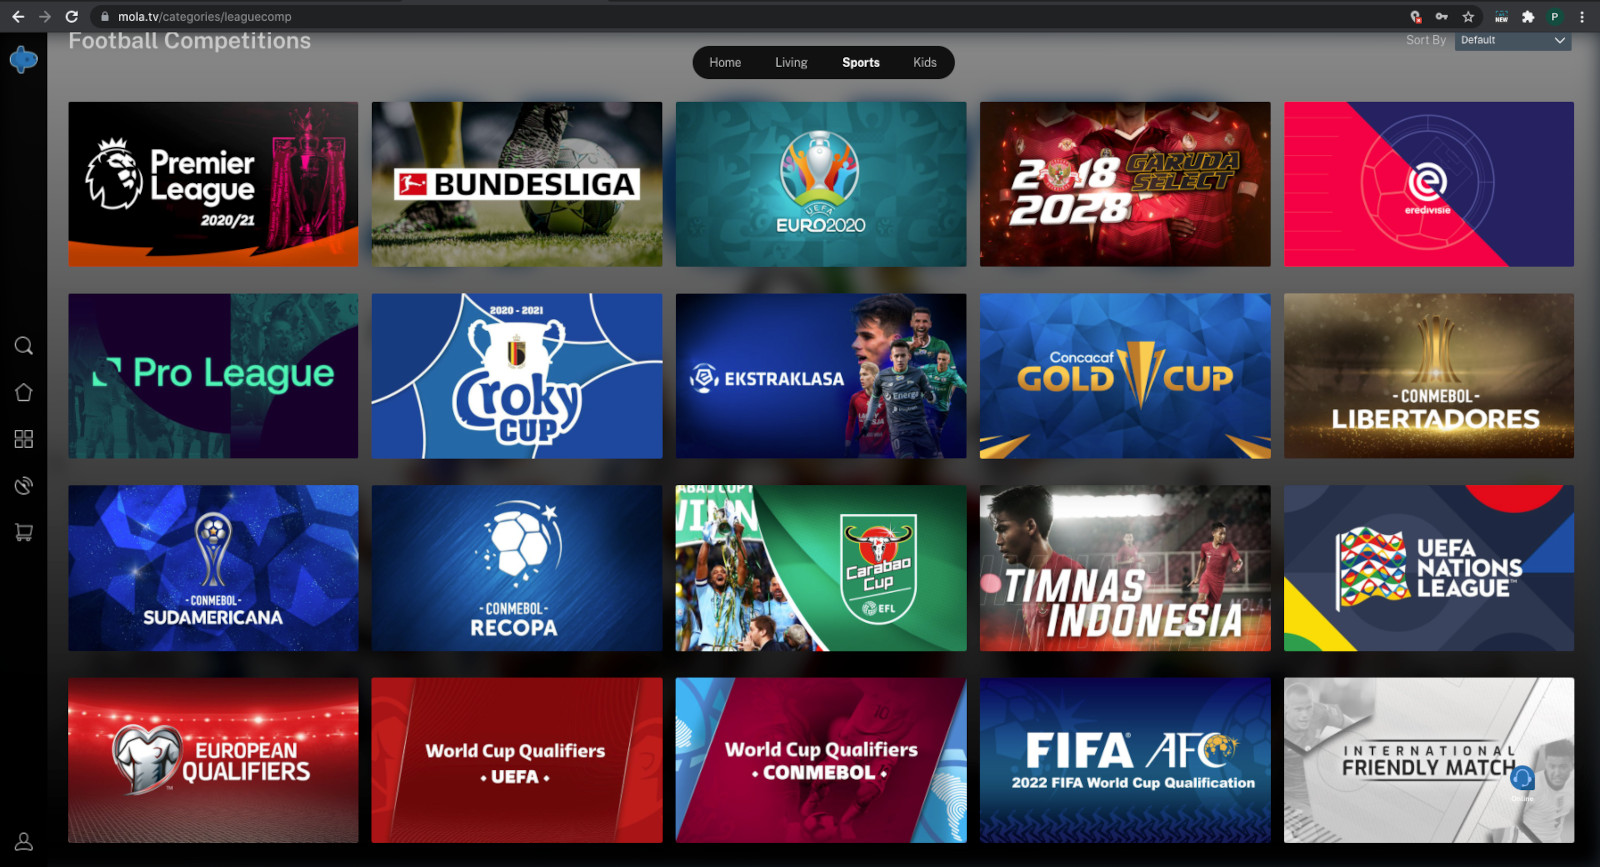 Watch Premier League, Bundesliga and a lot more interesting sports events